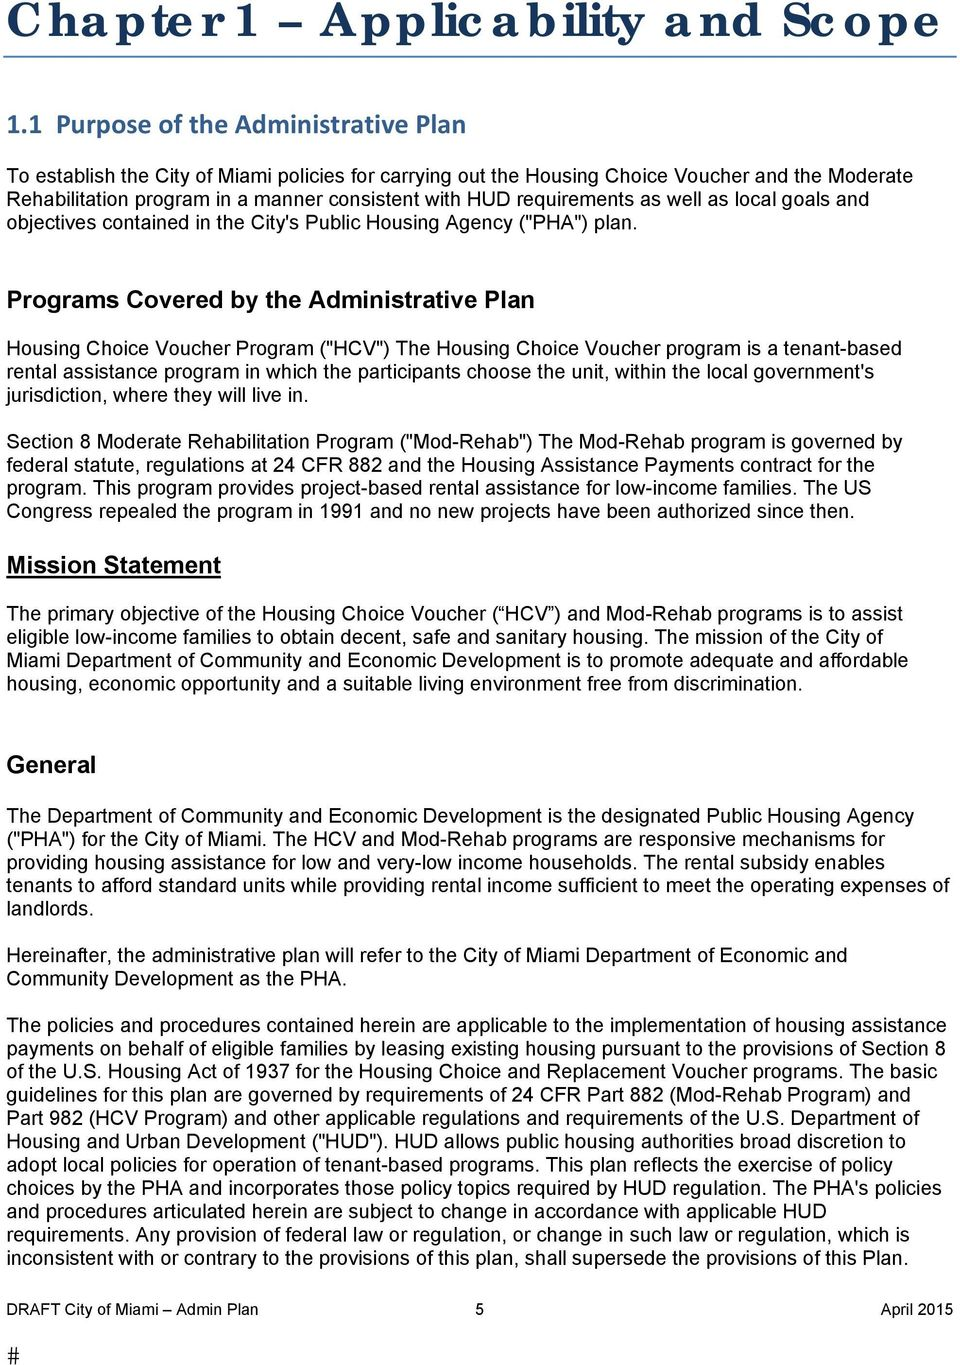 "requirements as well as local goals and objectives contained in the City's Public Housing Agency (""PHA"") plan."